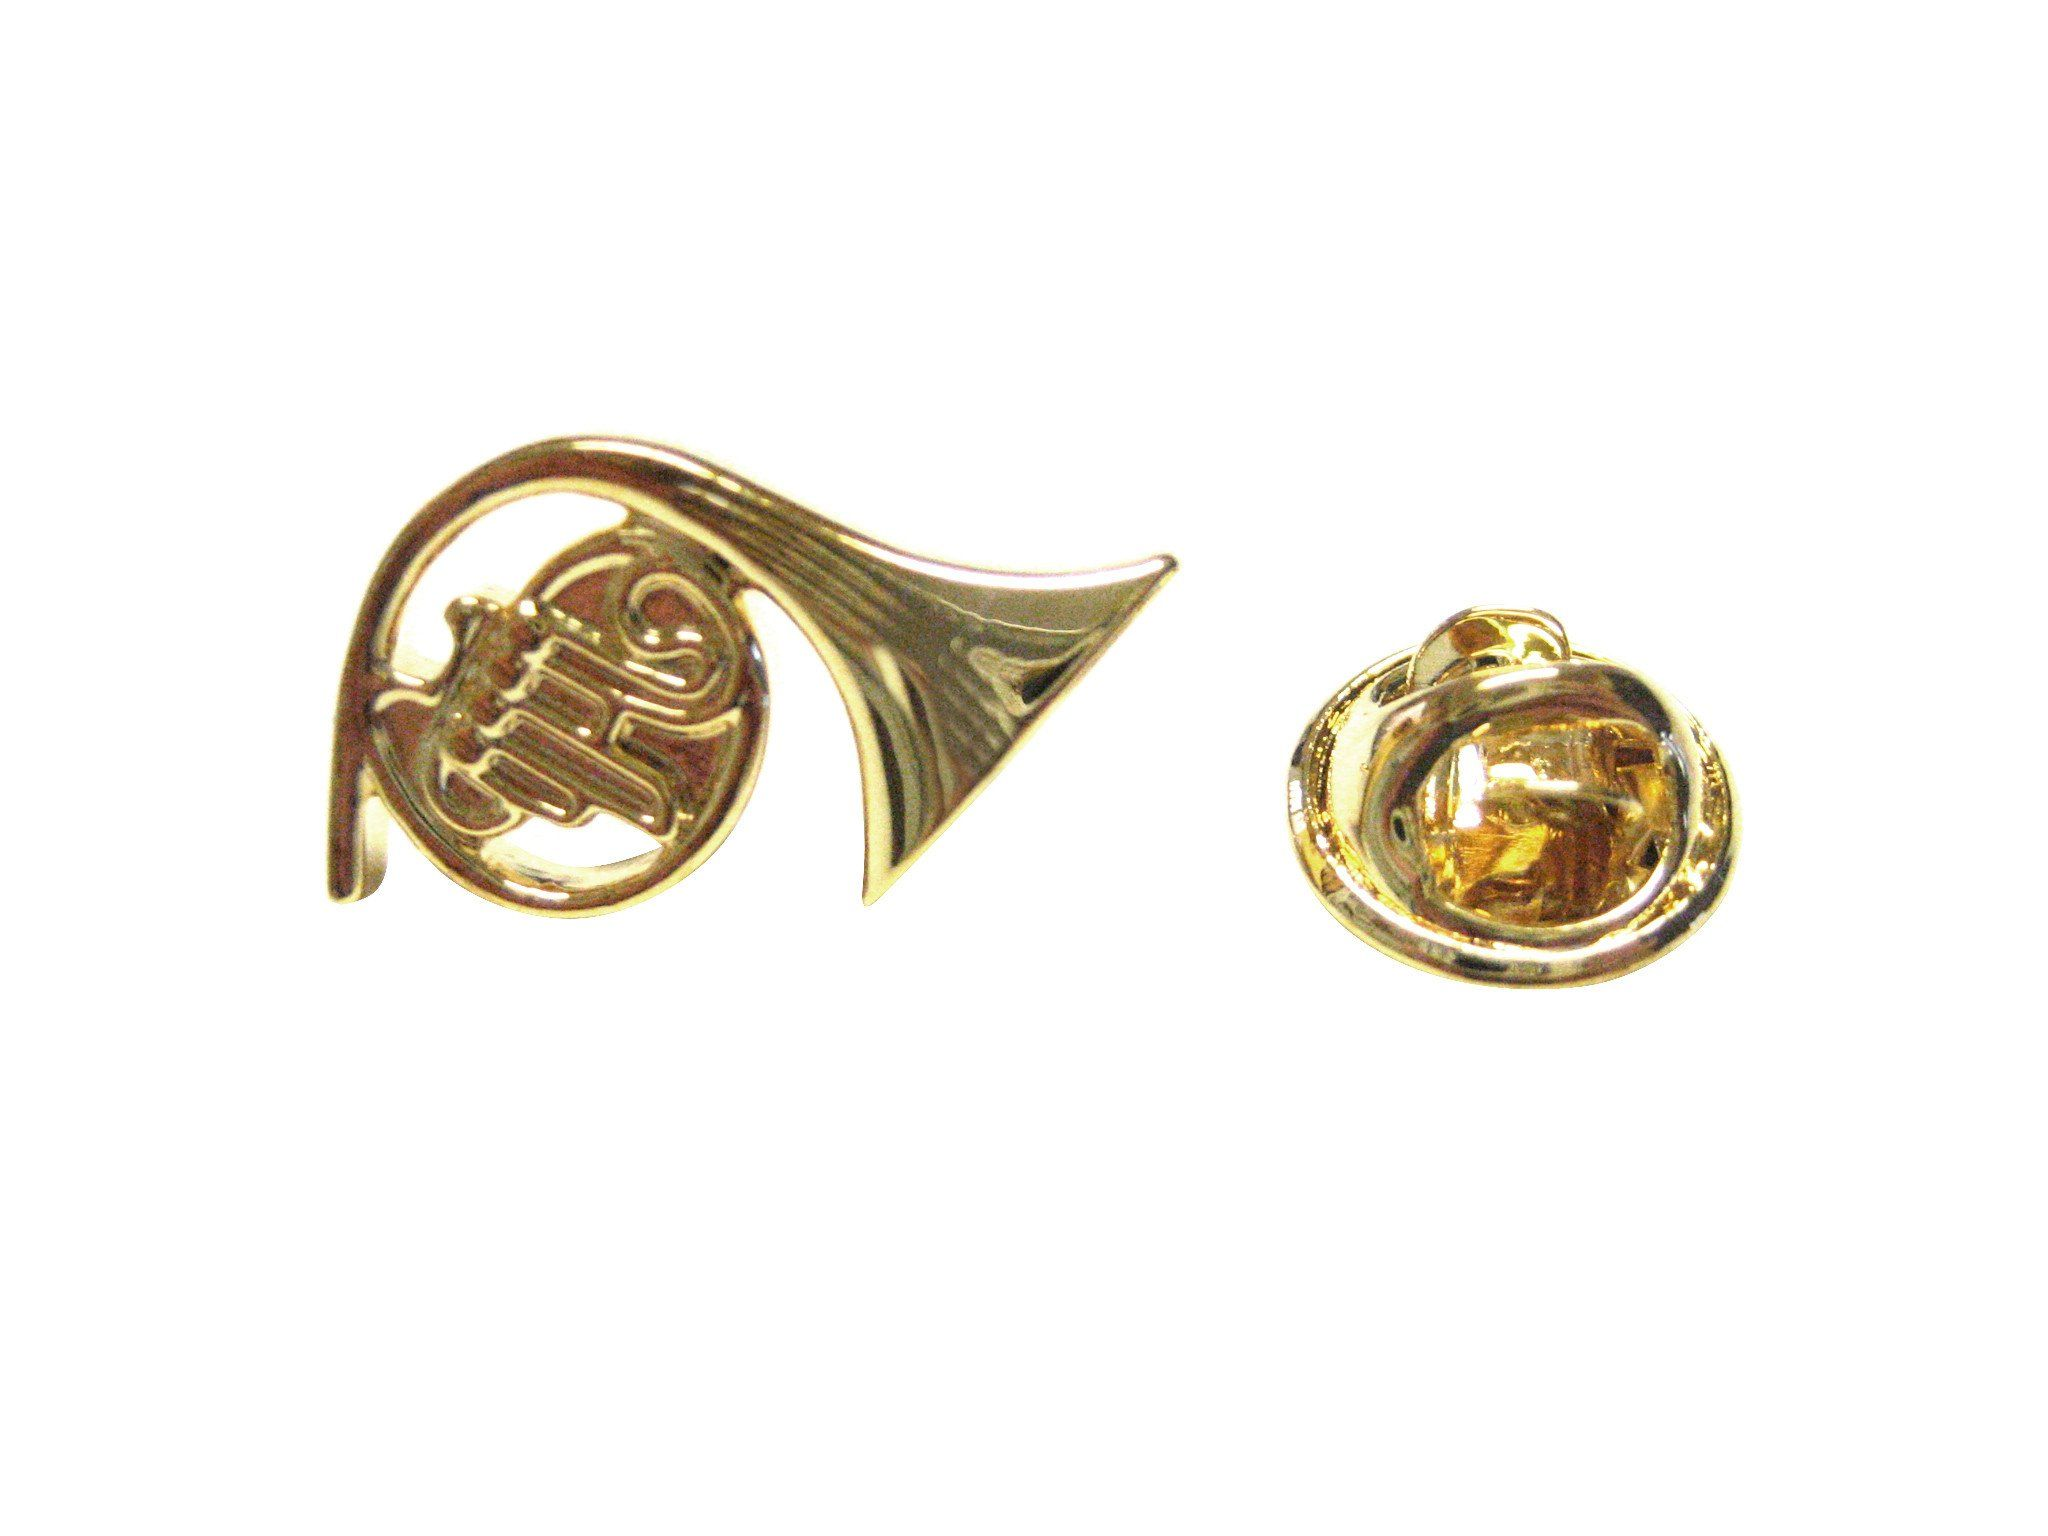 French Horn Musical Instrument Lapel Pin